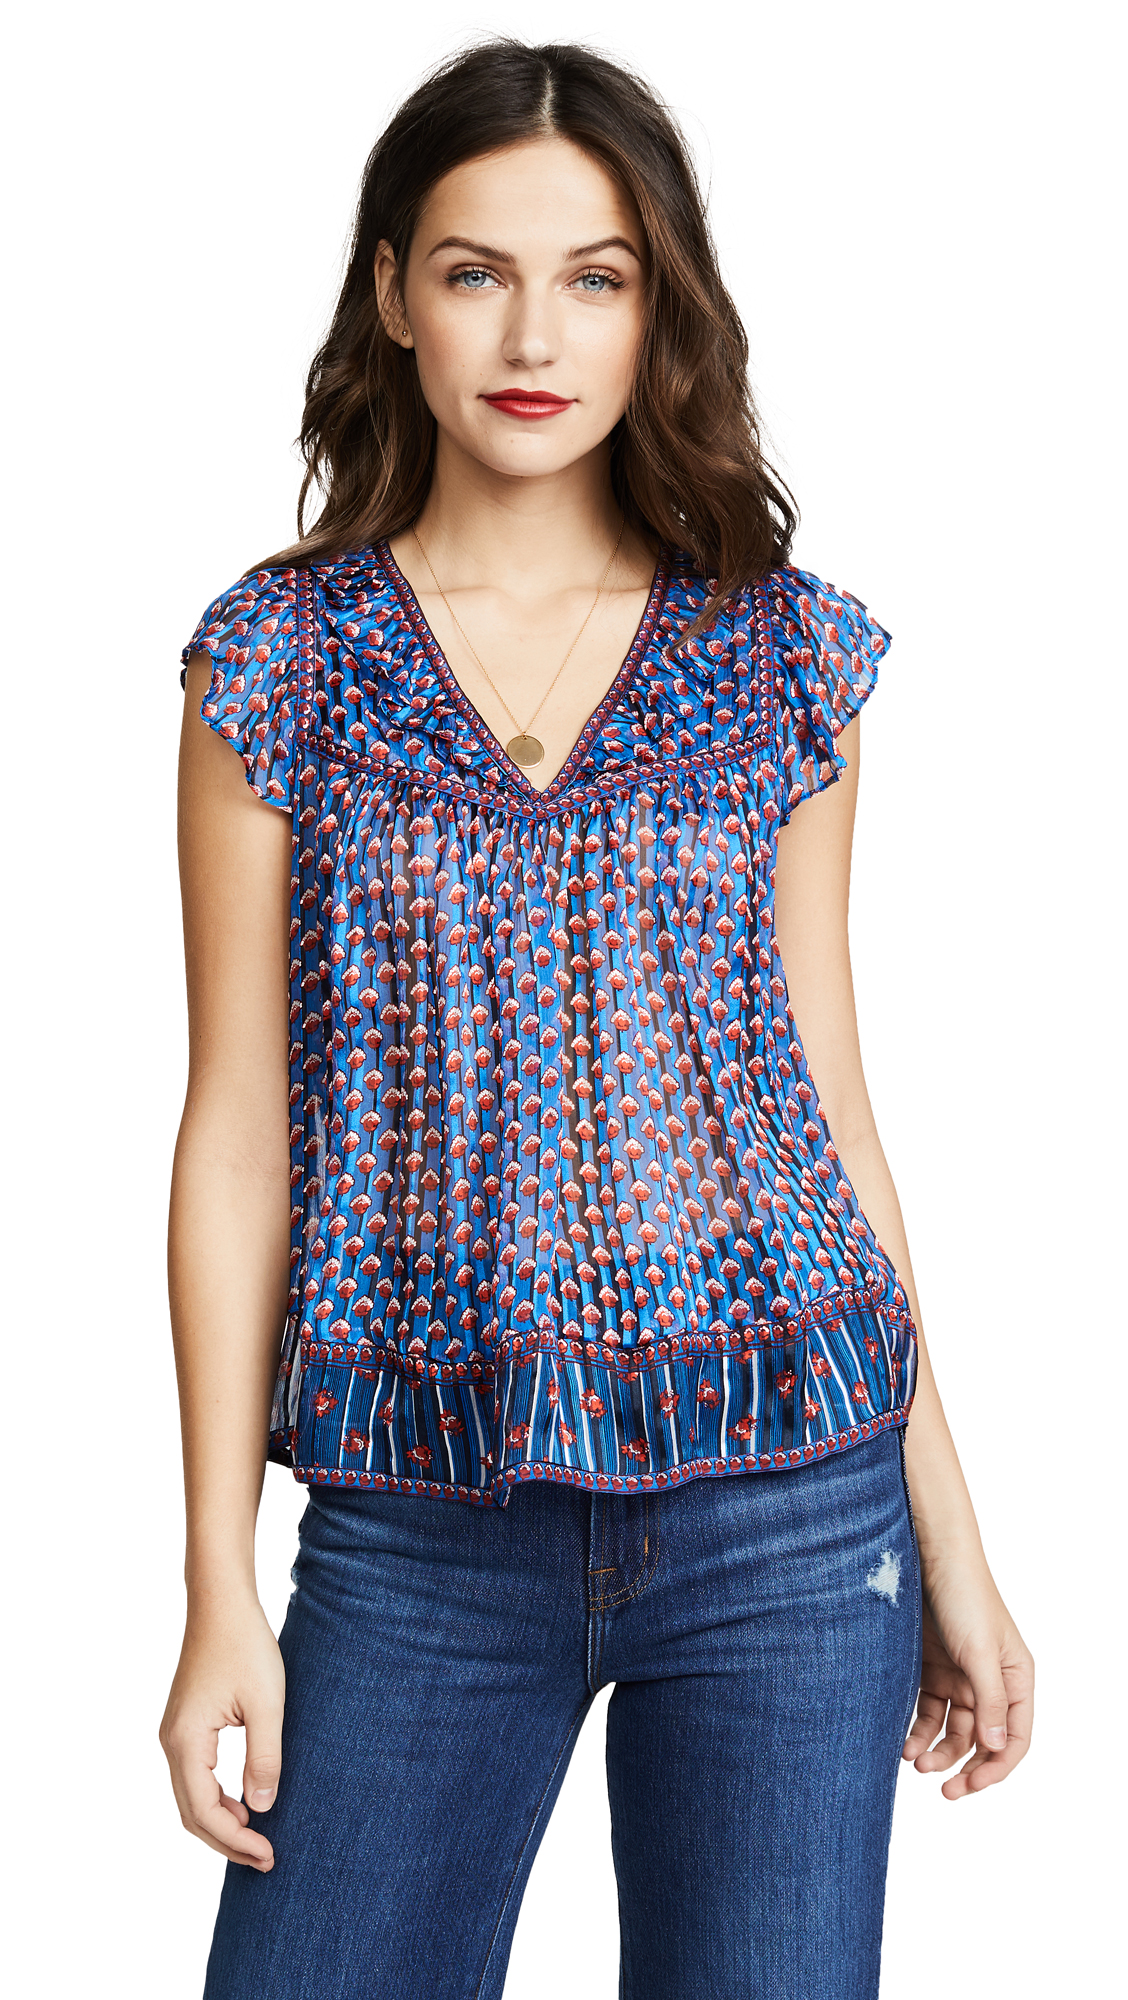 Ulla Johnson Avery Top - Cerulean